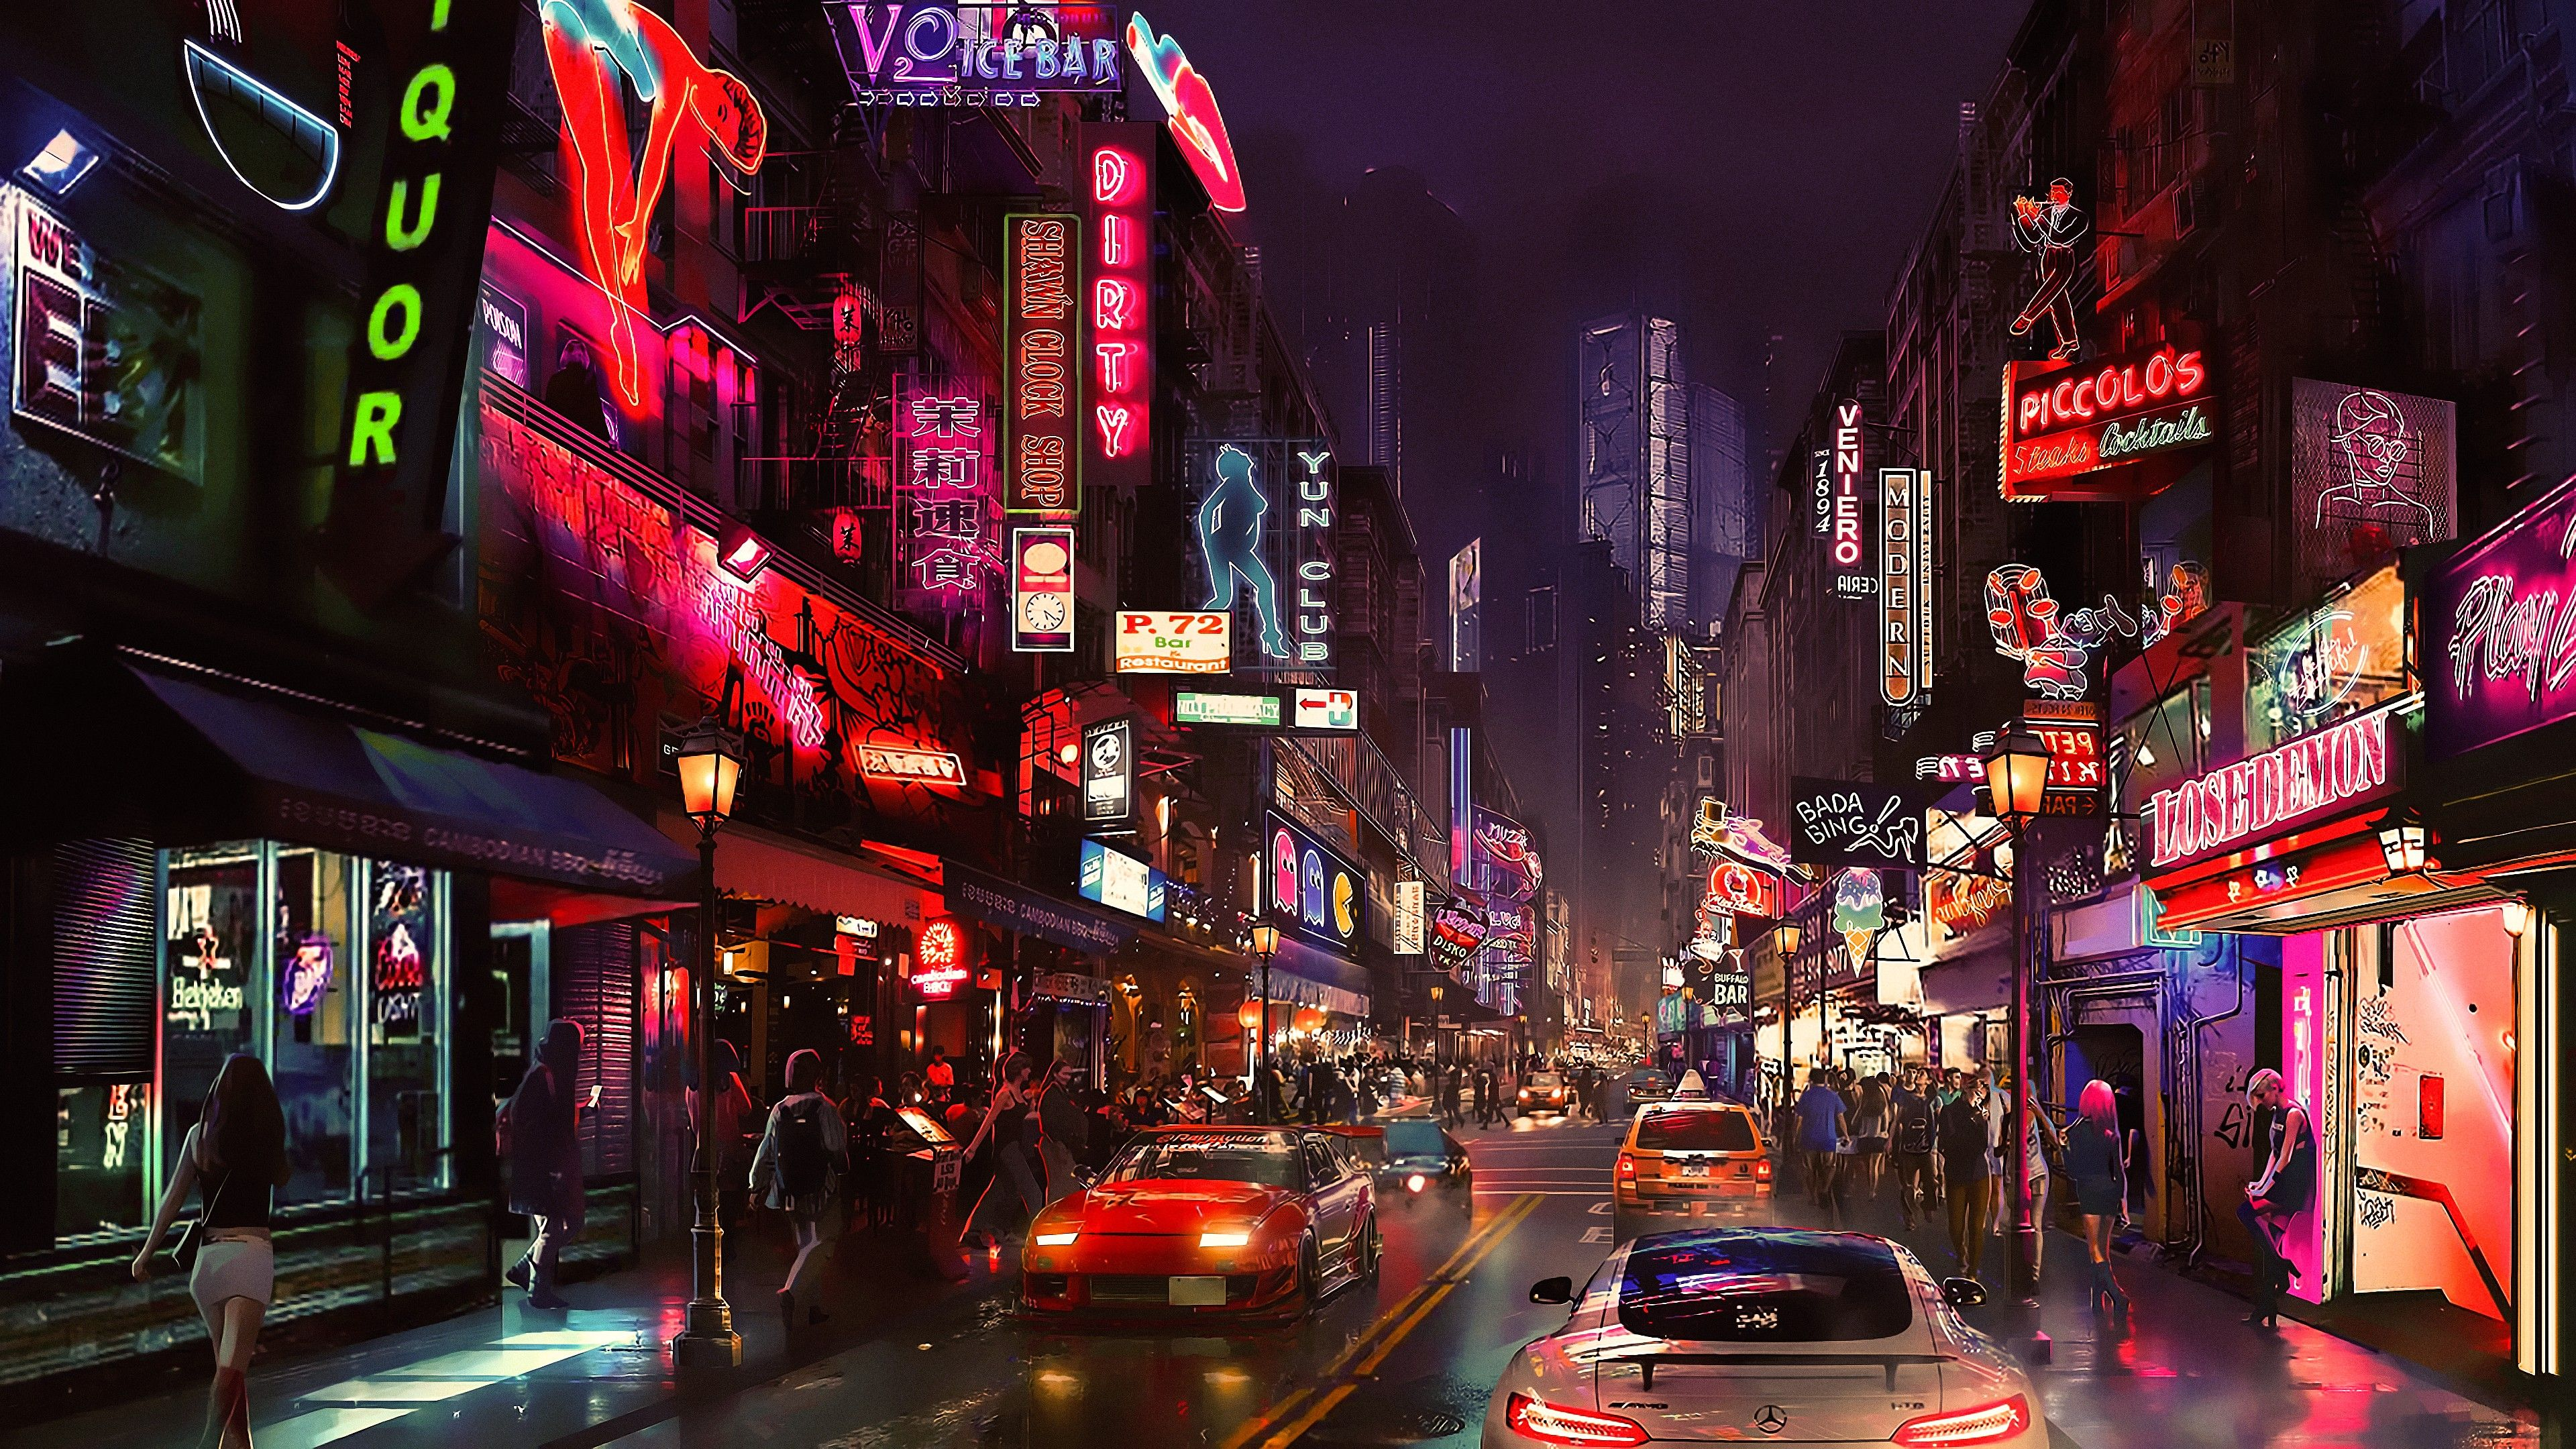 Cyberpunk Future World 4k 6413 Futuristic City Neon Wallpaper Concept Art